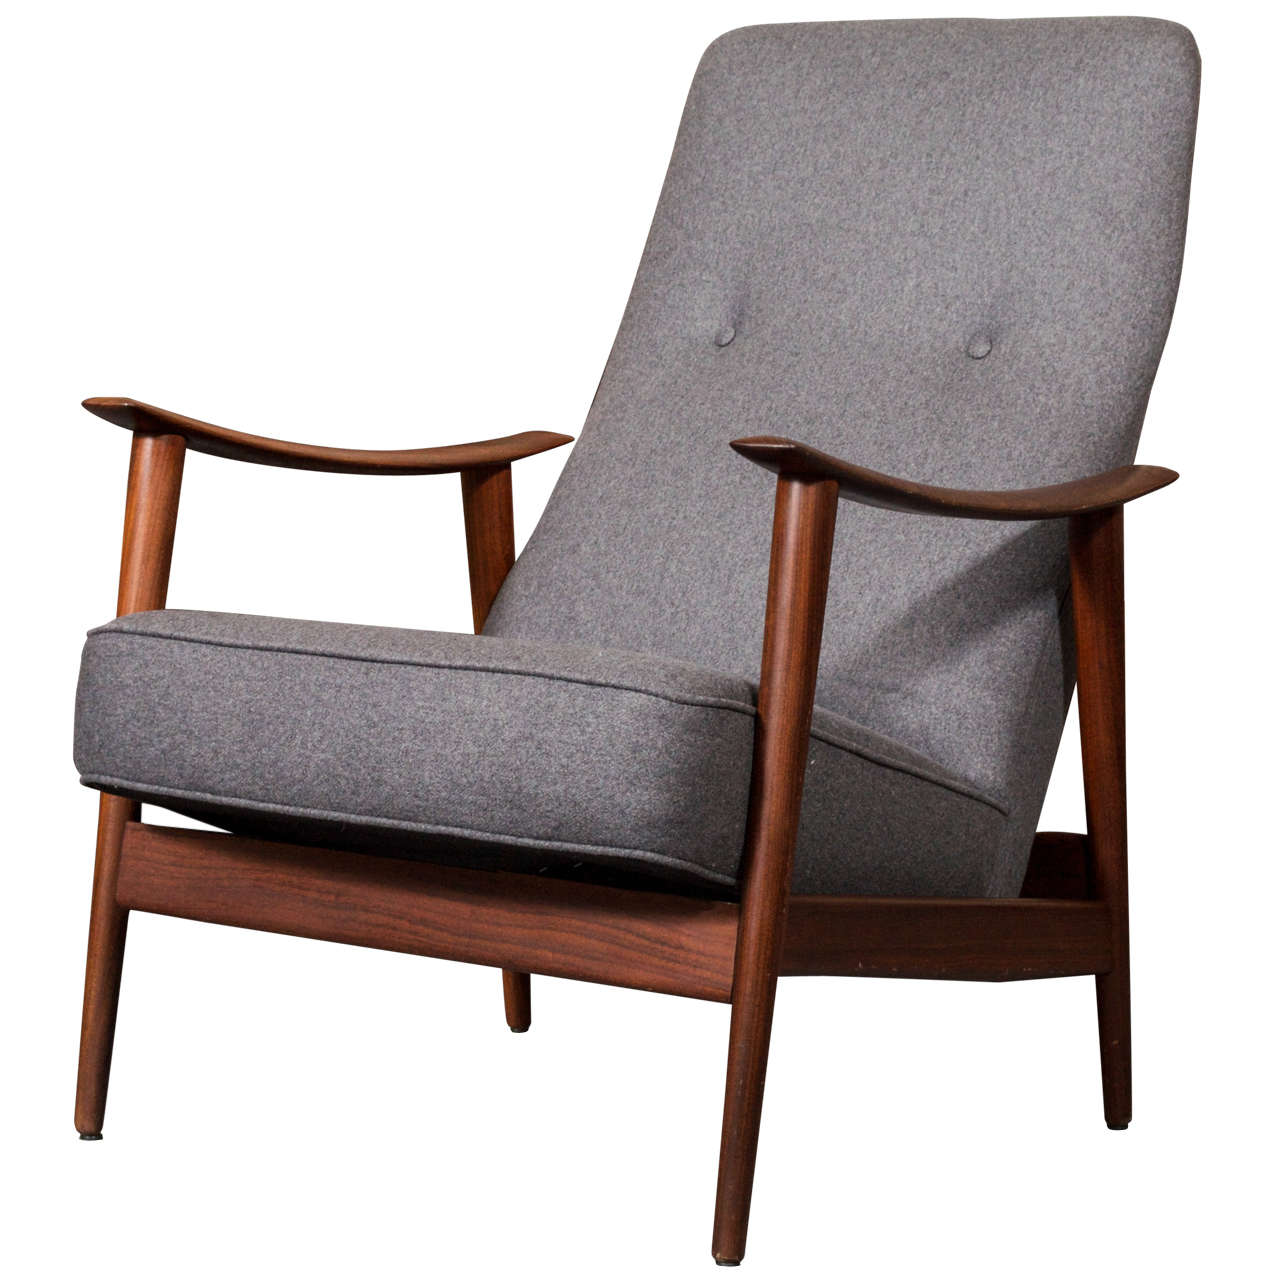 Scandinavian Chair 1960 39s Scandinavian Teak Rocking Lounge Chair In Gray Wool